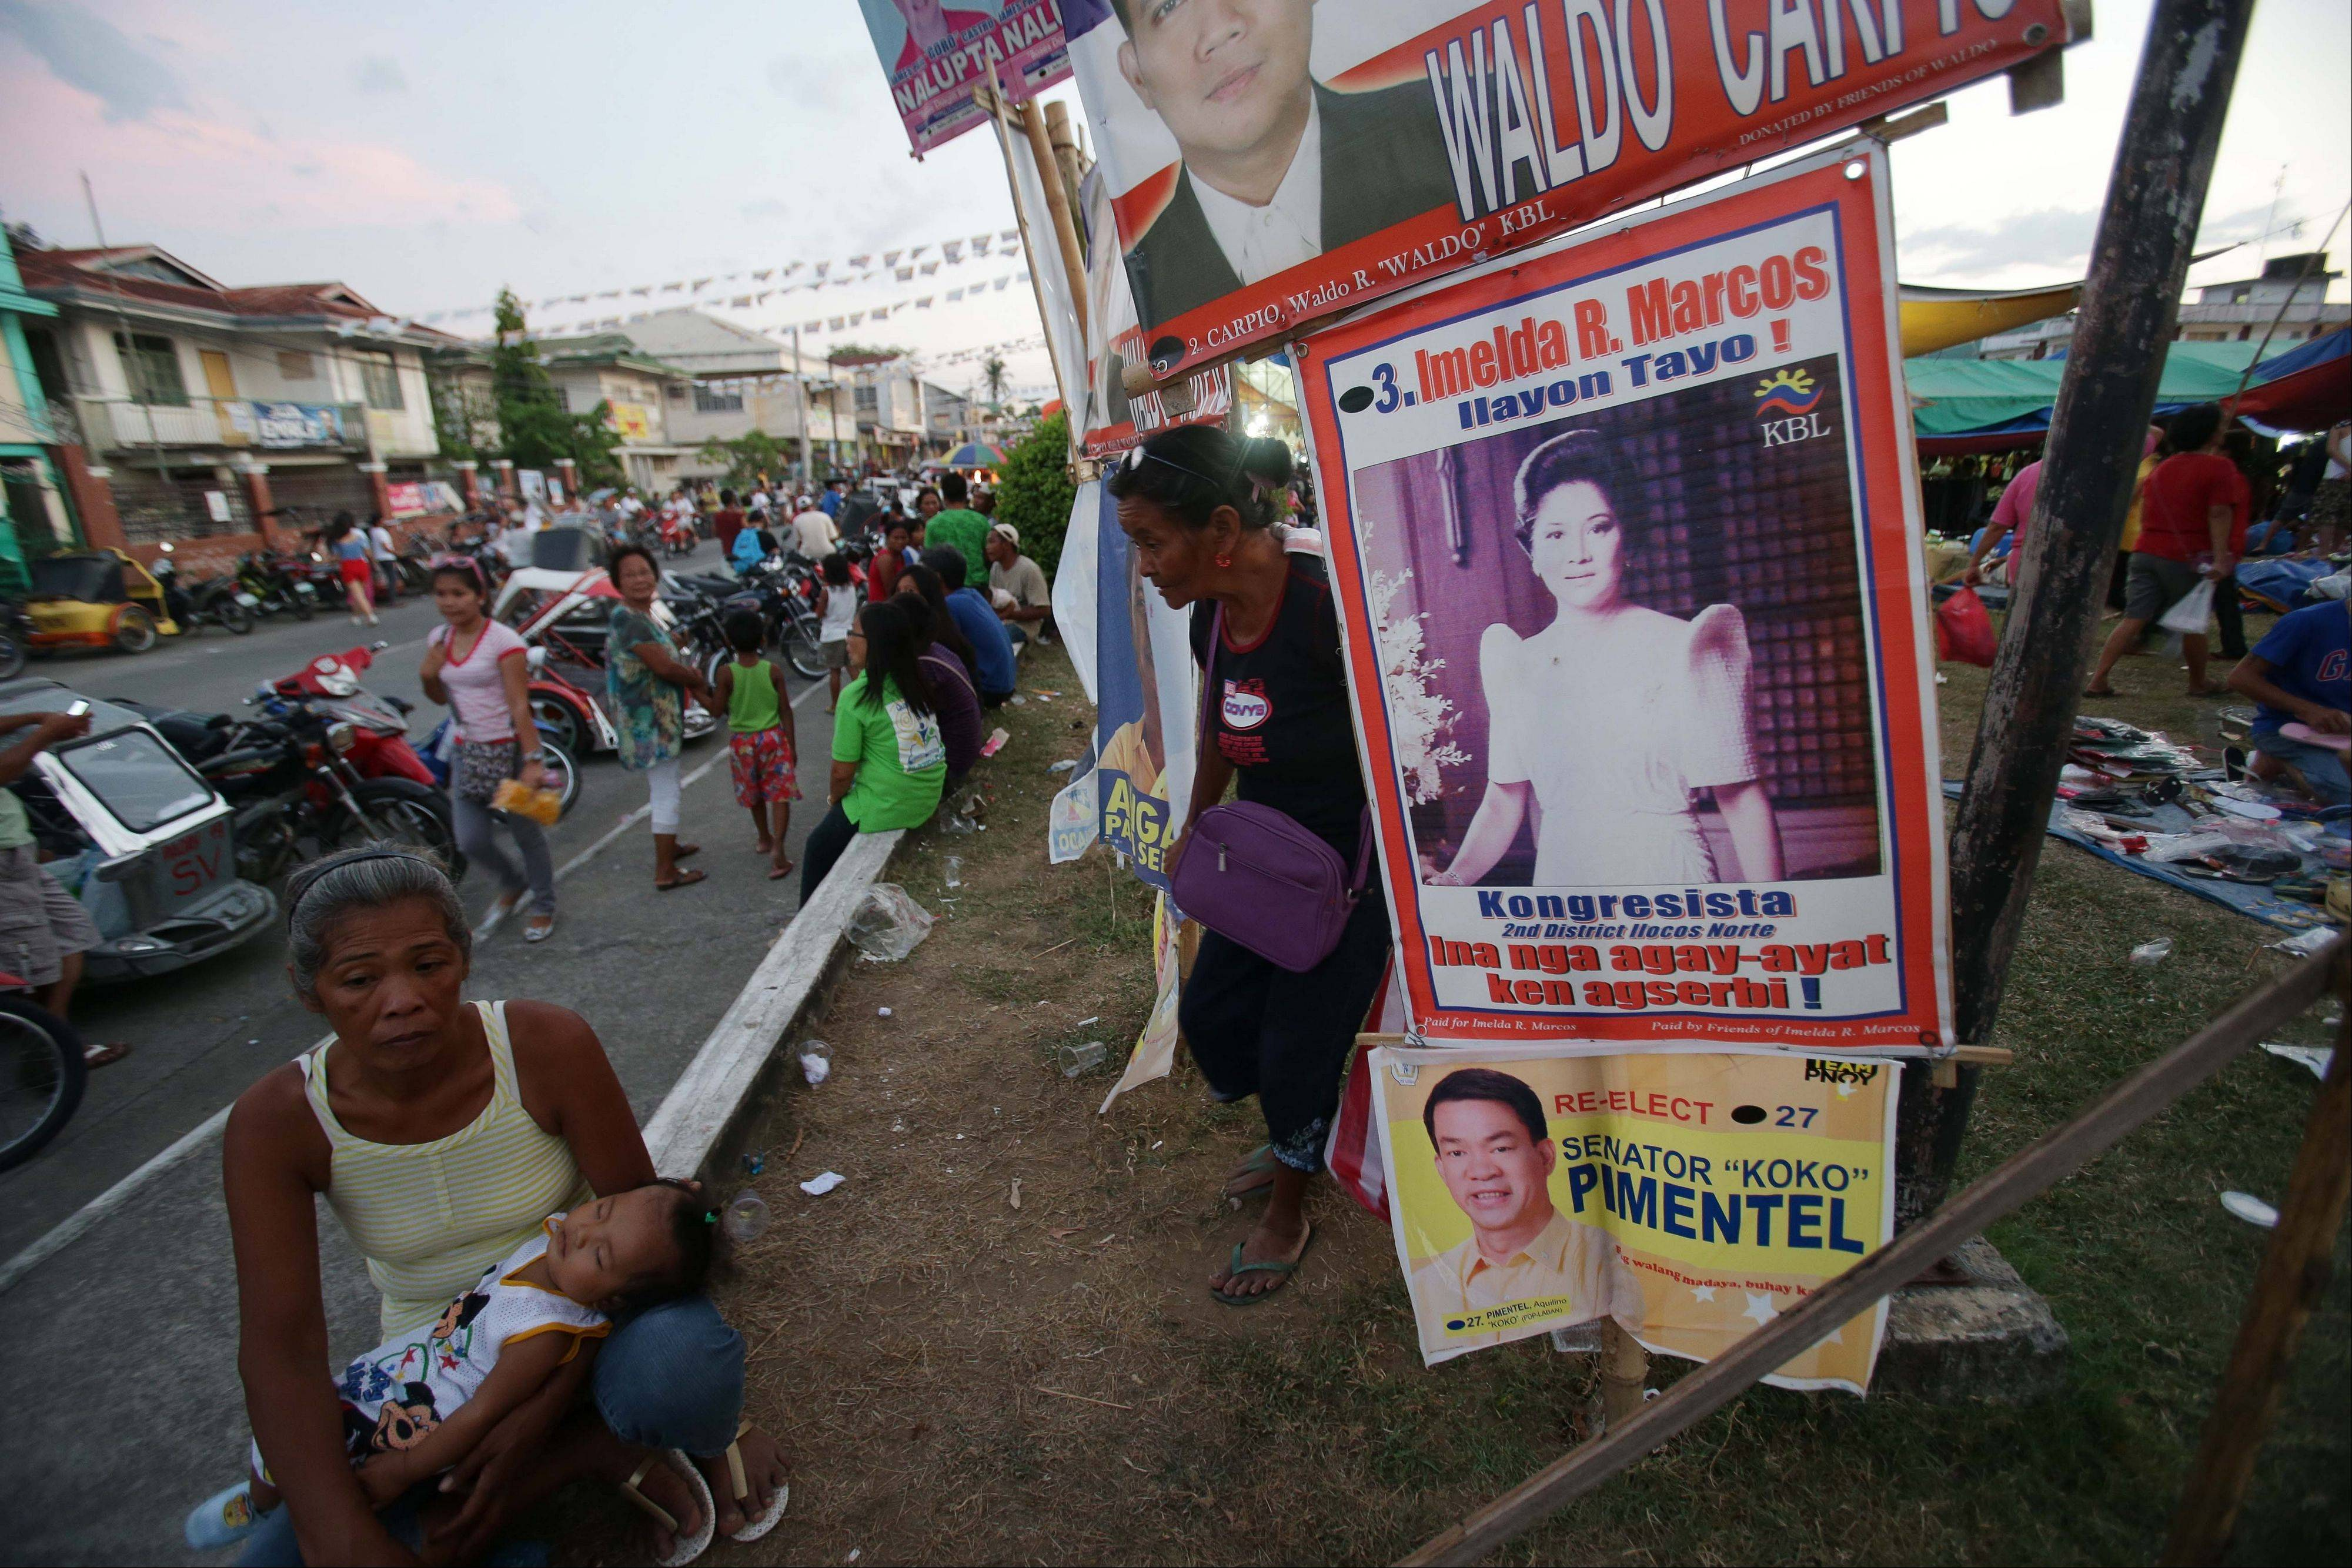 A poster of former Philippine First Lady Imelda Marcos is on display last Sunday at town center in Ilocos Norte province, northern Philippines.